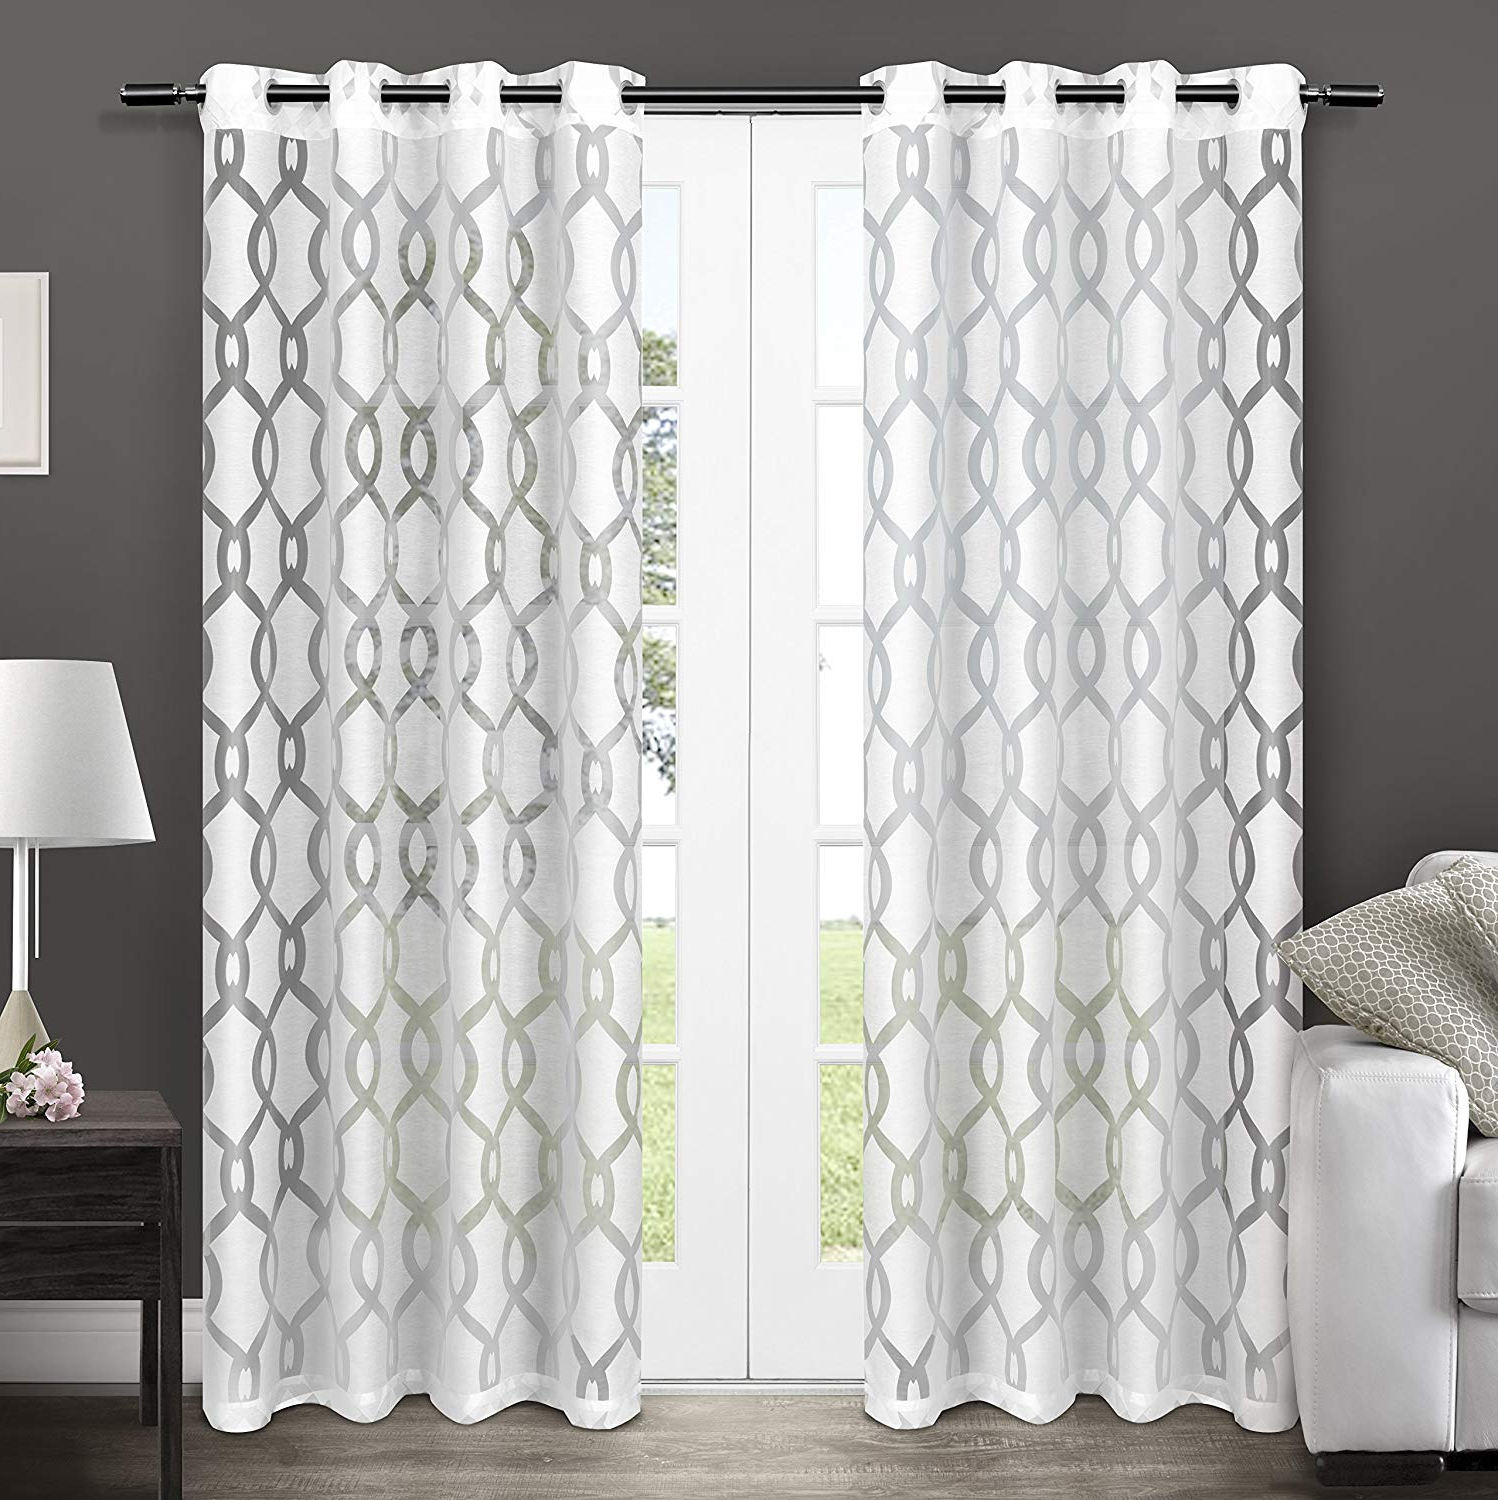 Preferred White Linen Curtain Panels – Recipes With More Regarding Tassels Applique Sheer Rod Pocket Top Curtain Panel Pairs (View 12 of 20)